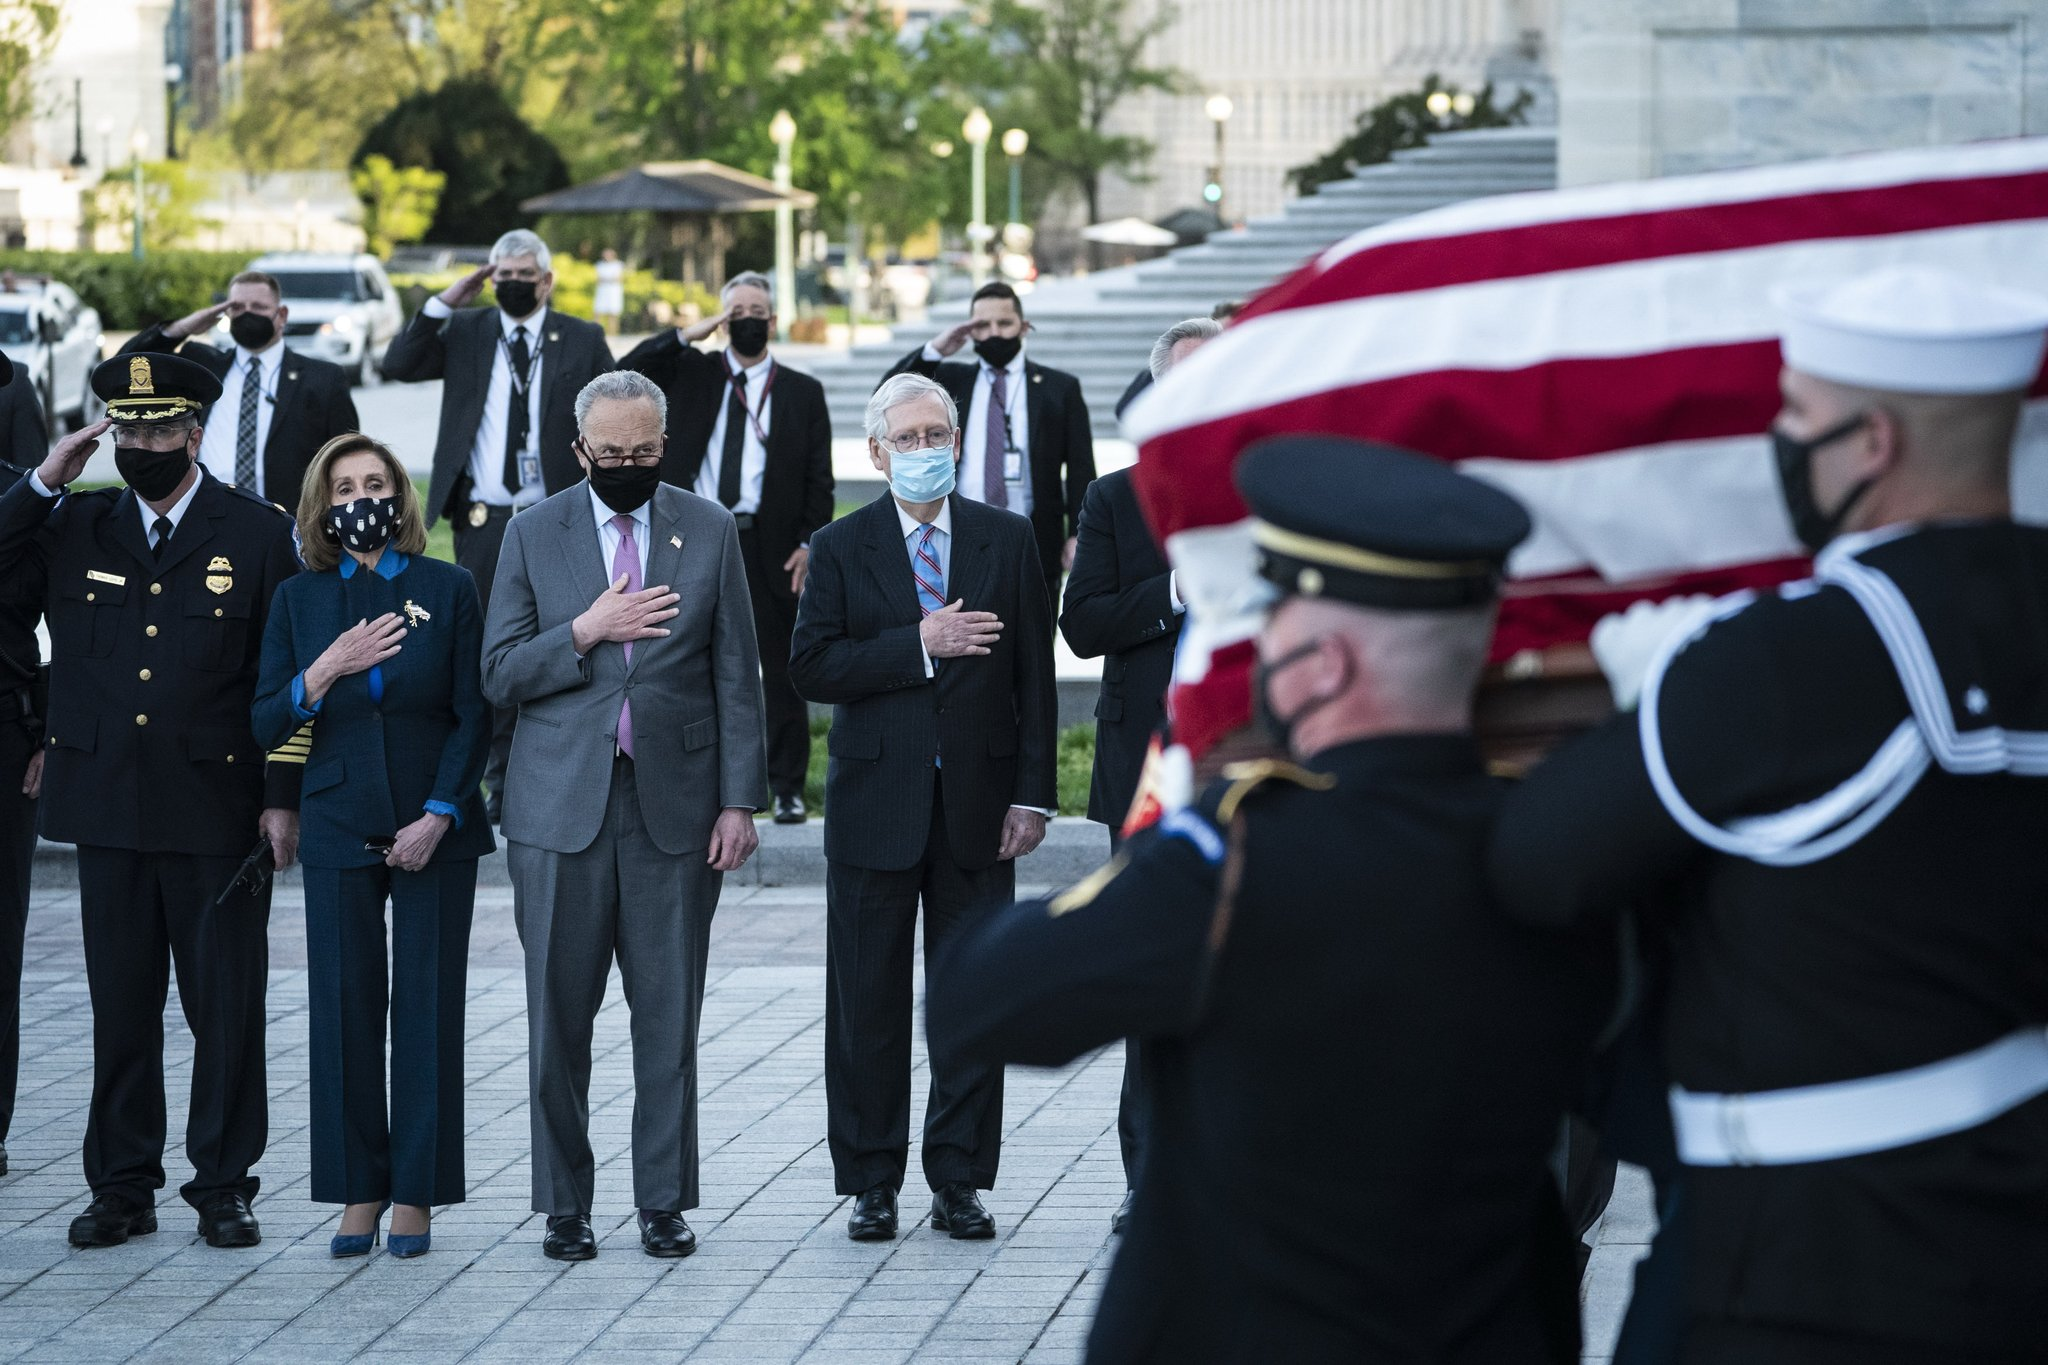 Leaders of the U.S. Congress, including House Speaker Nancy Pelosi, Senate Democrat Chuck Schumer, and Senate Republican leader Mitch McConnell (second from left) also attended Officer Evans' memorial service.  AP = Yonhop News